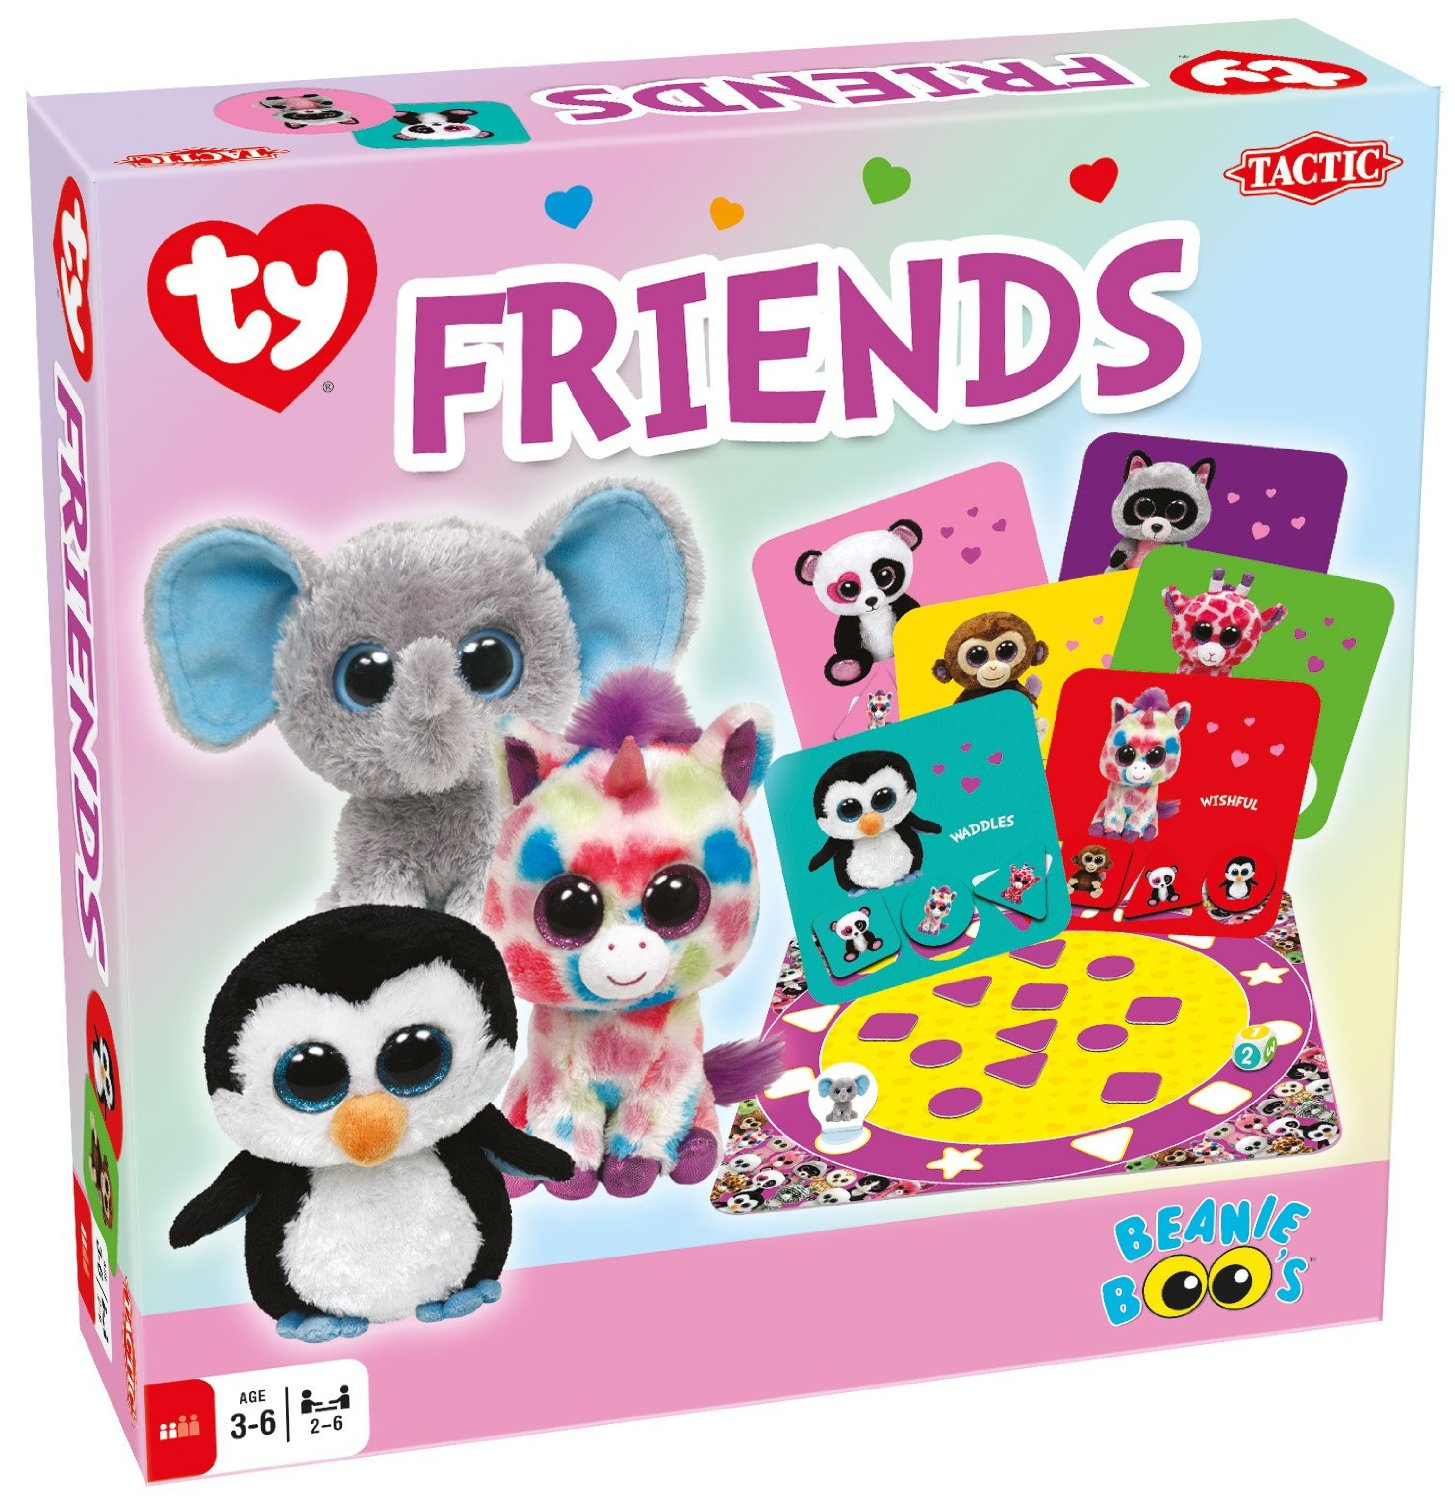 Popular Product Reviews by Amy: TY Beanie Boos Friends Board